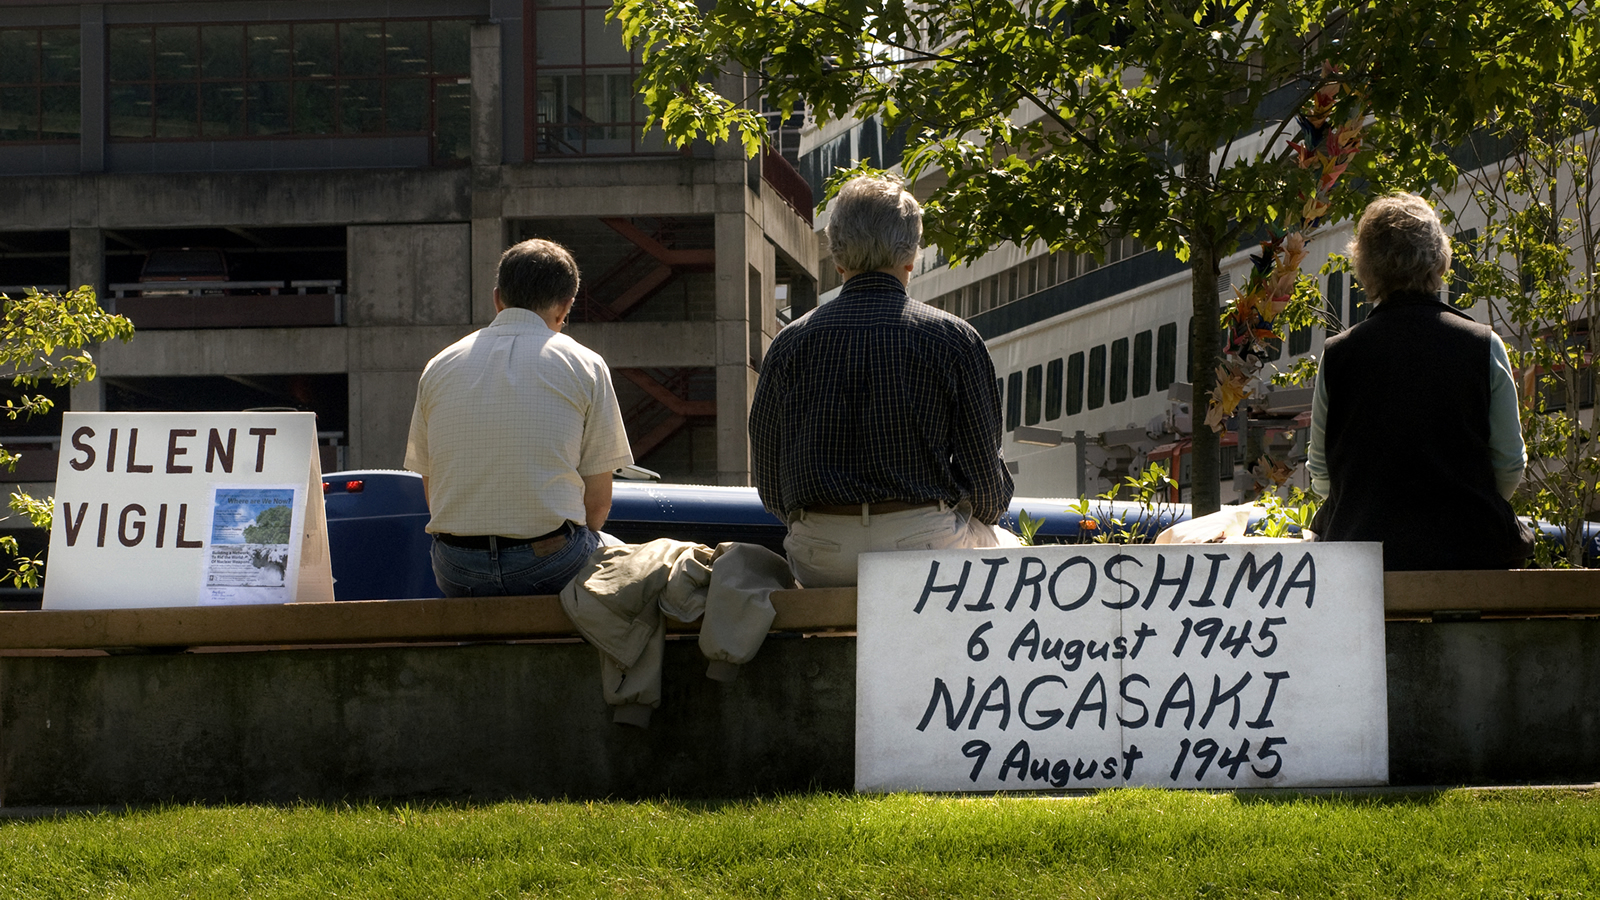 Silent Peace Vigil with Sign for the Anniversary of the Hiroshima/Nagasaki Atomic Bombs